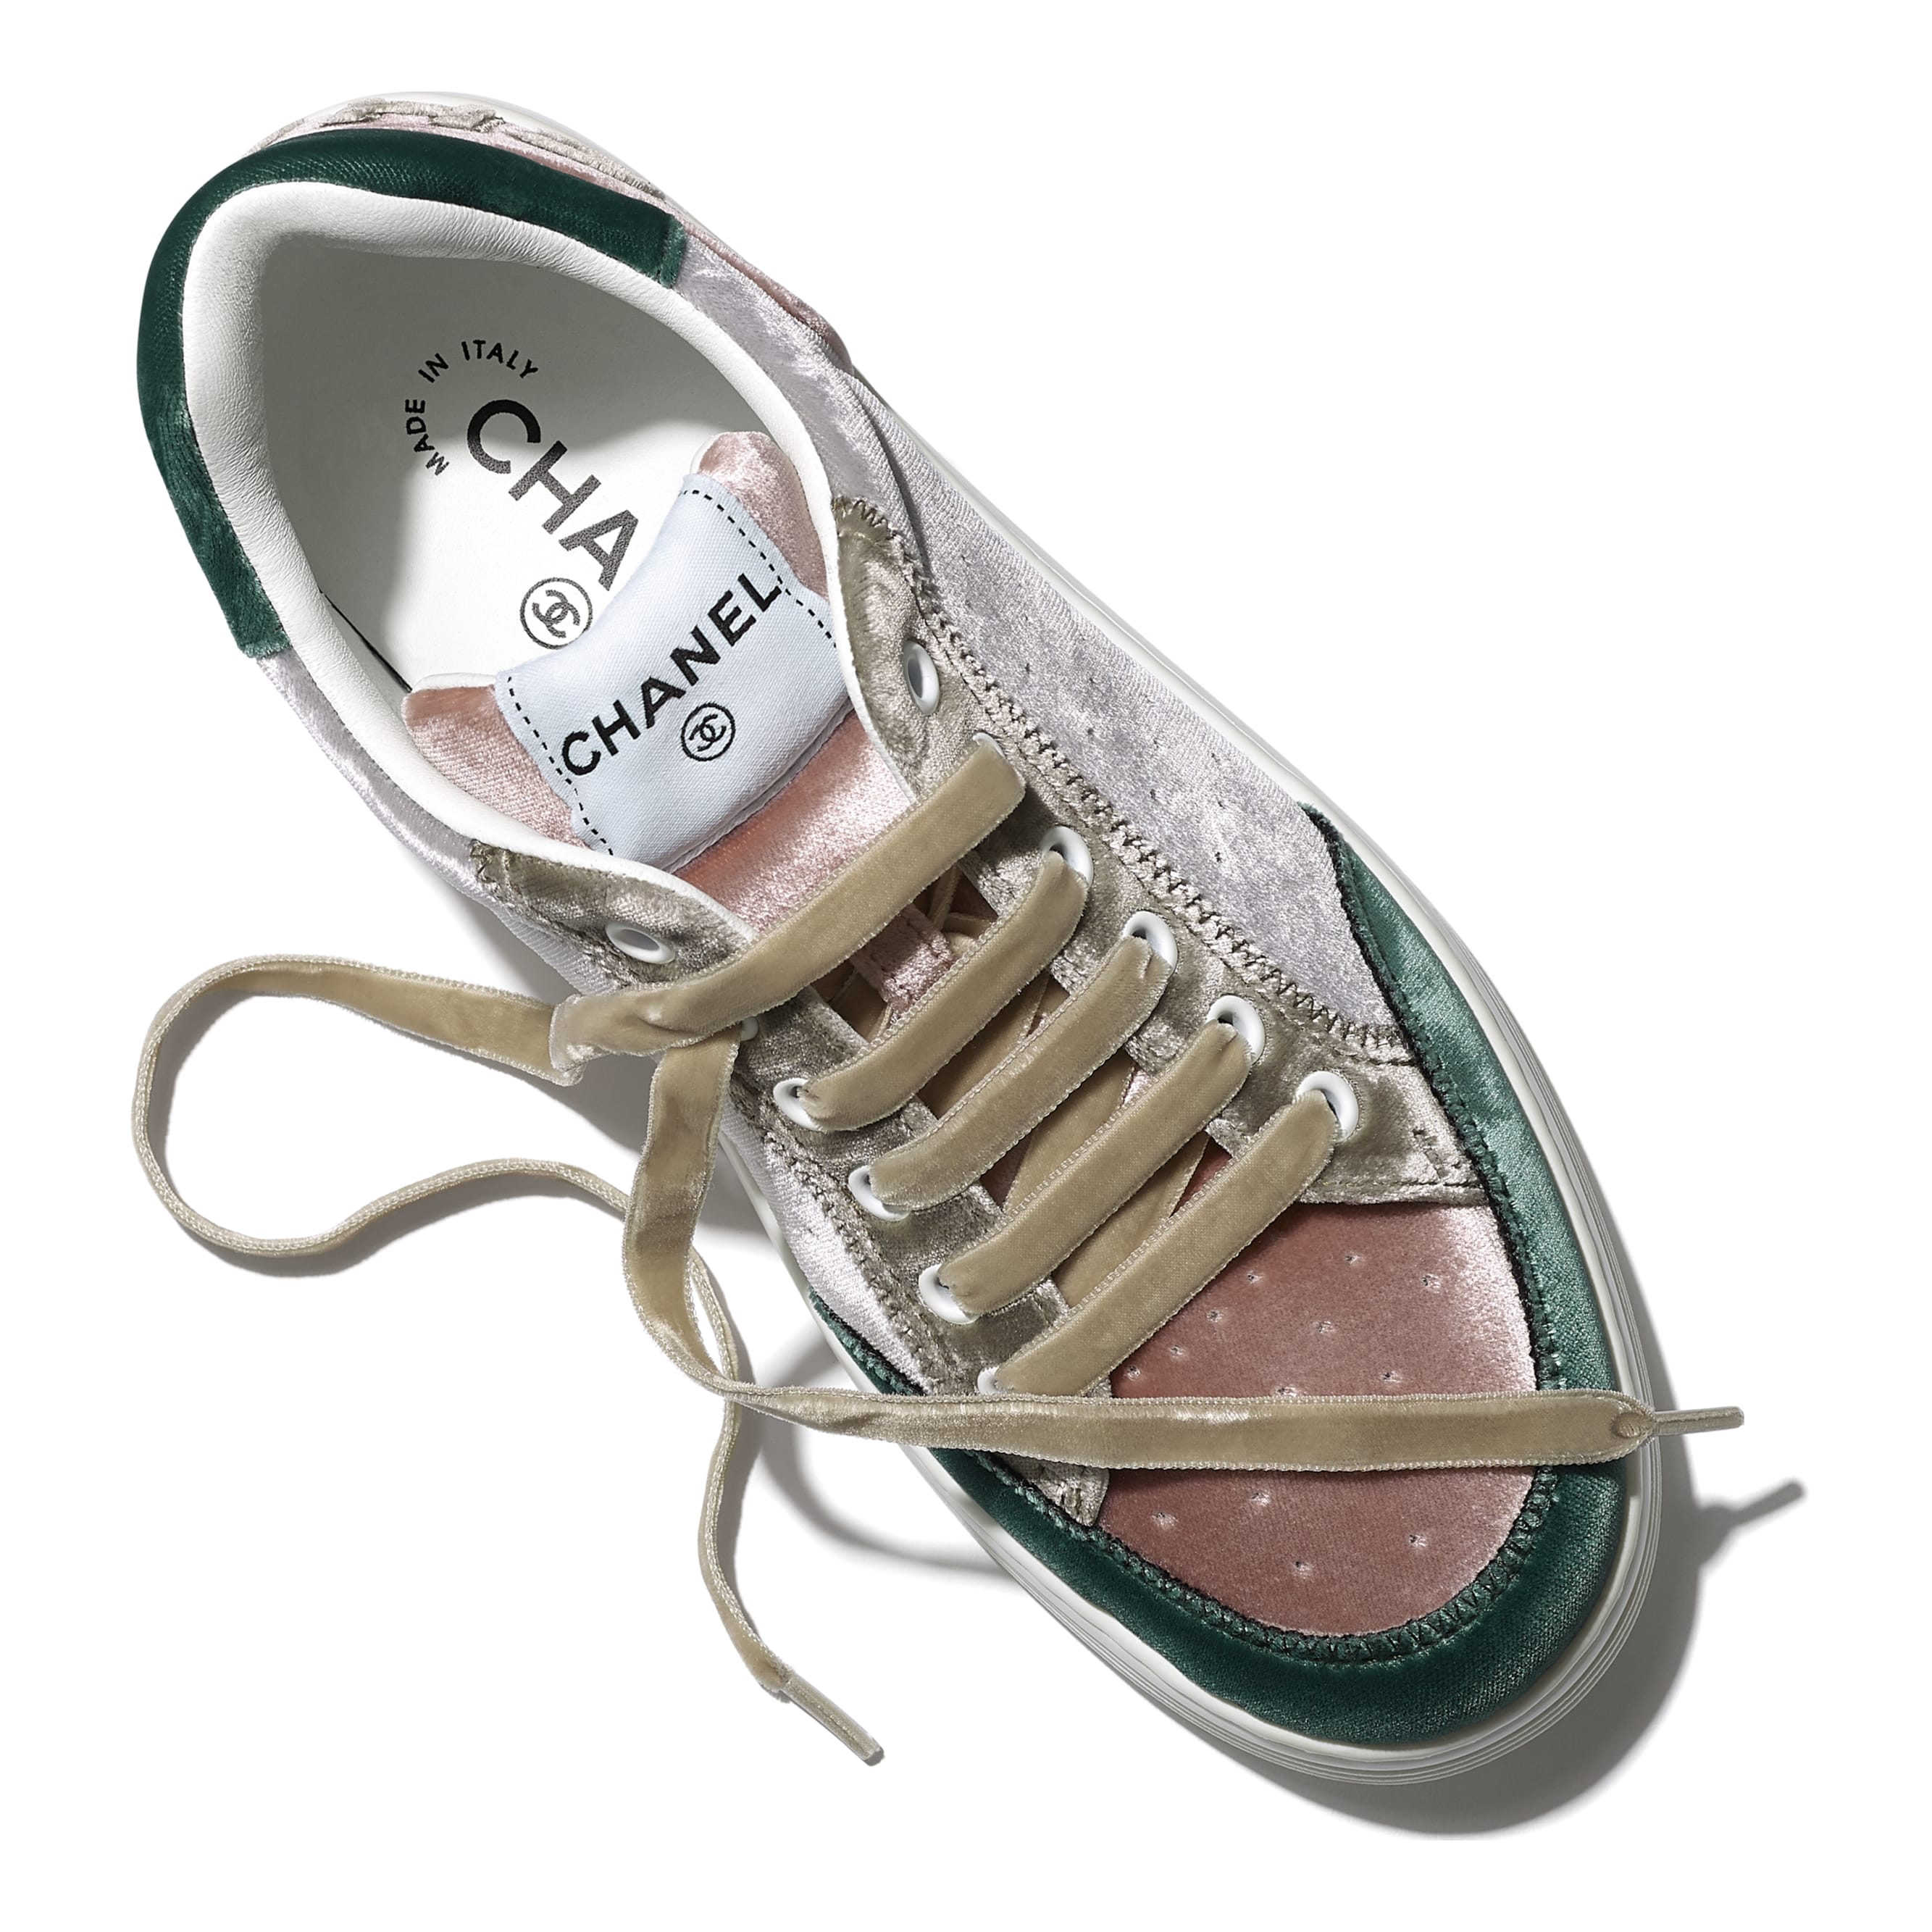 Trainers - Grey, Pink & Green - Velvet - CHANEL - Extra view - see standard sized version